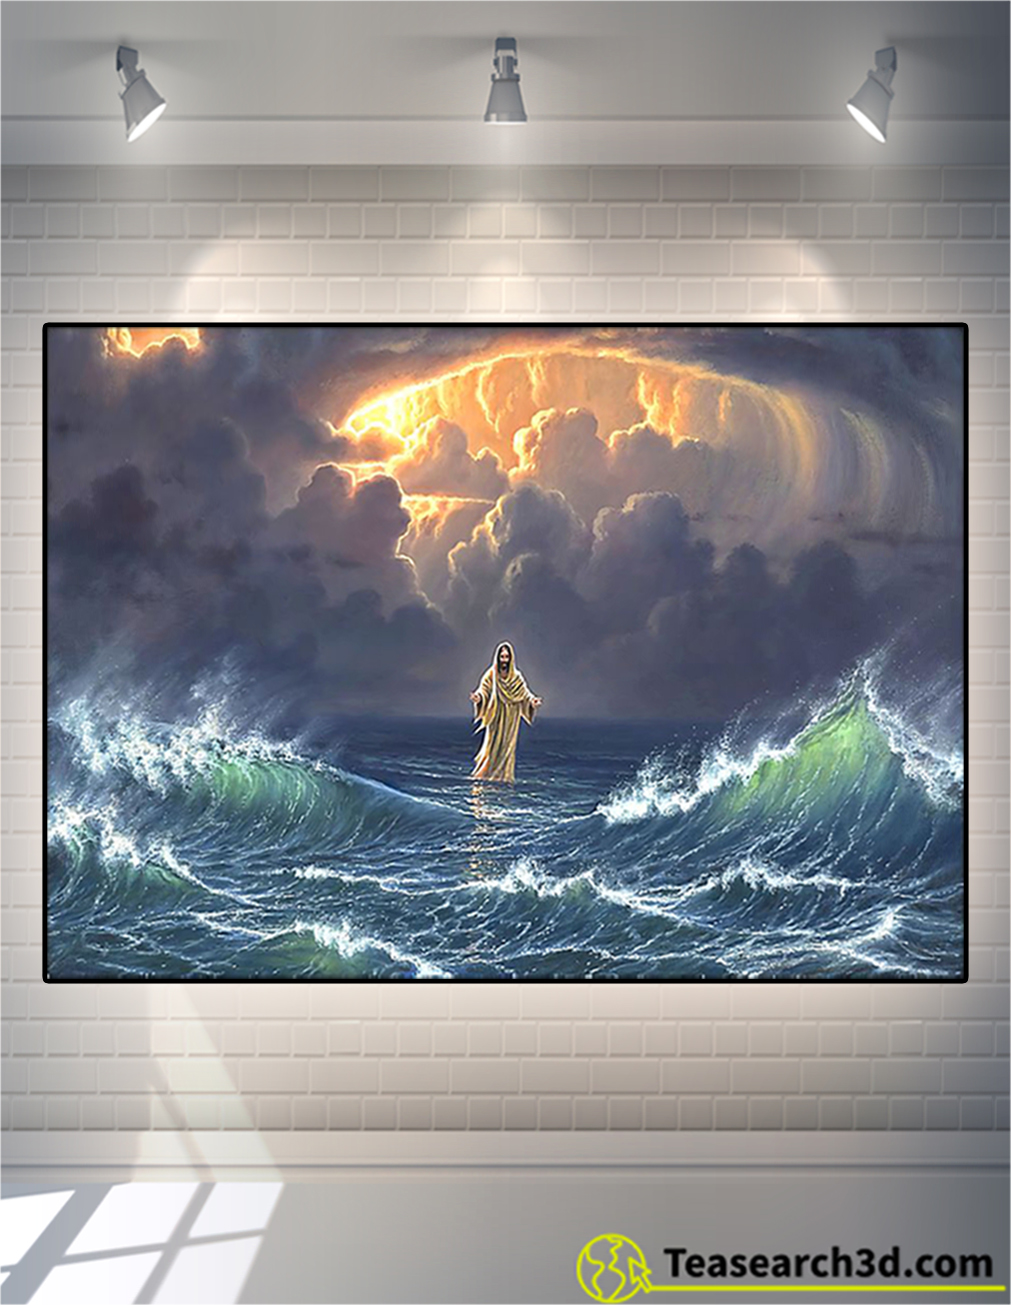 [LIMITED] Poster In the storm Jesus walked on the water